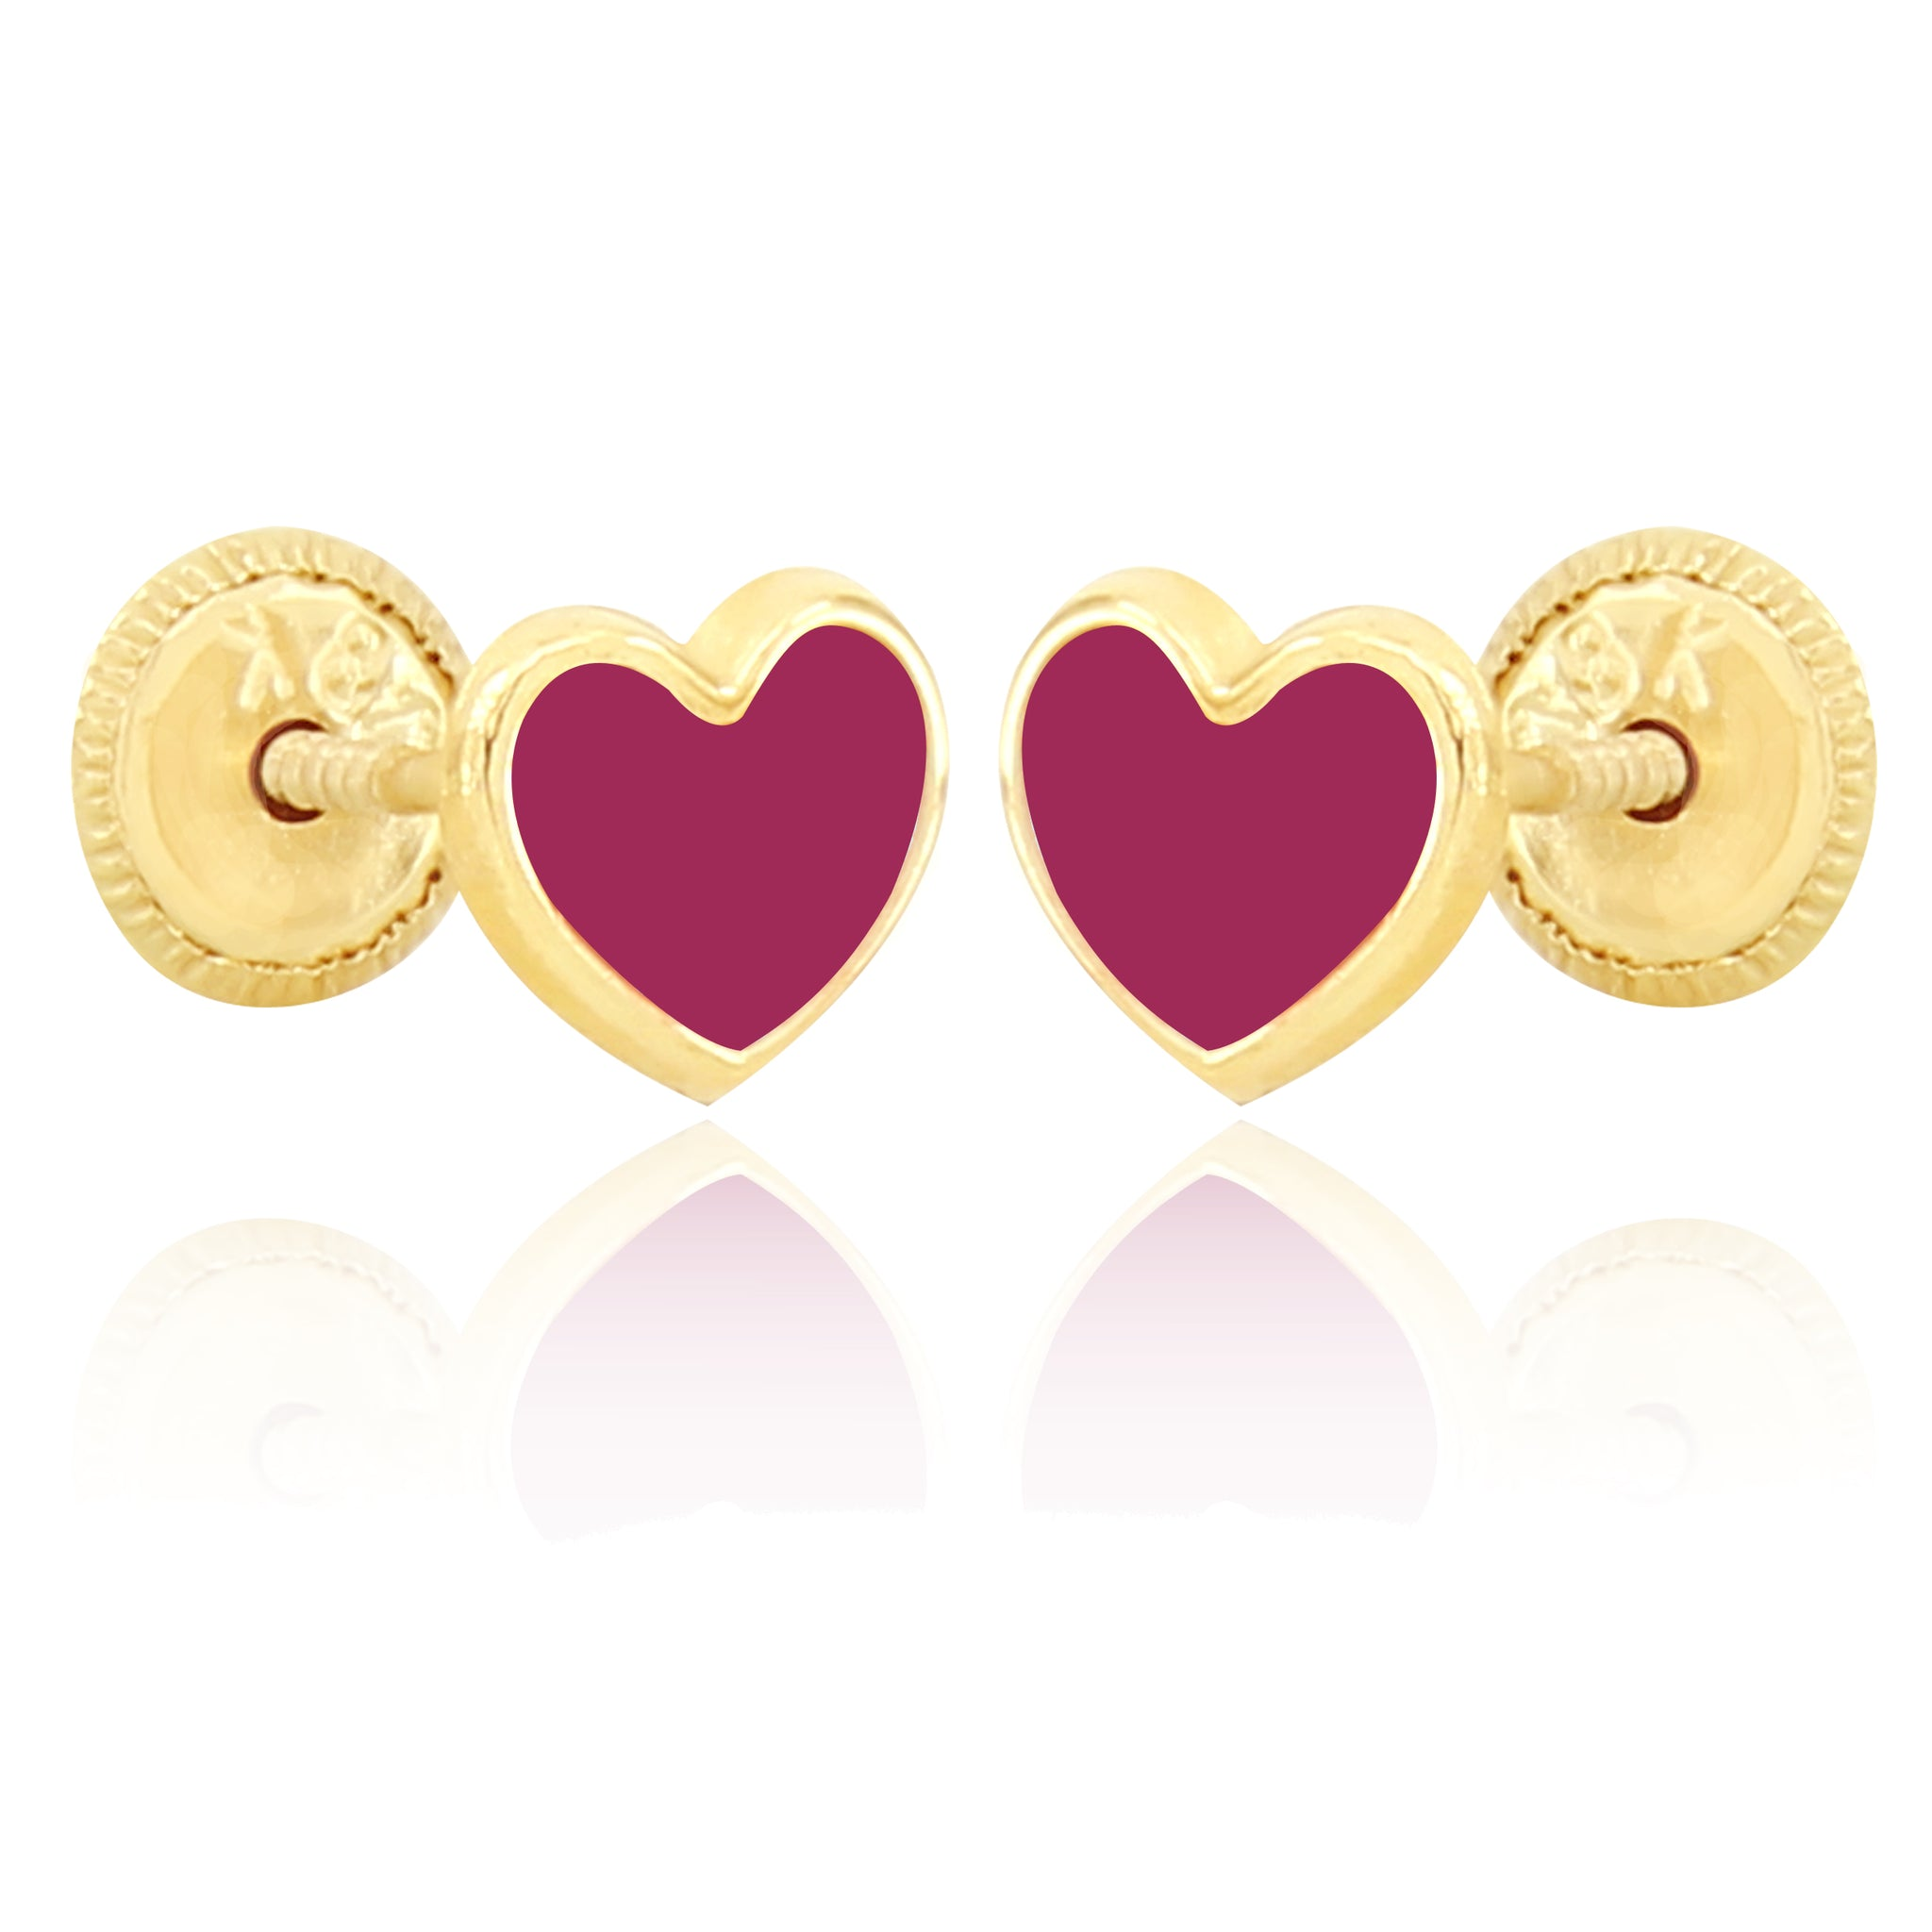 Shape of My Heart Earrings - Fusia